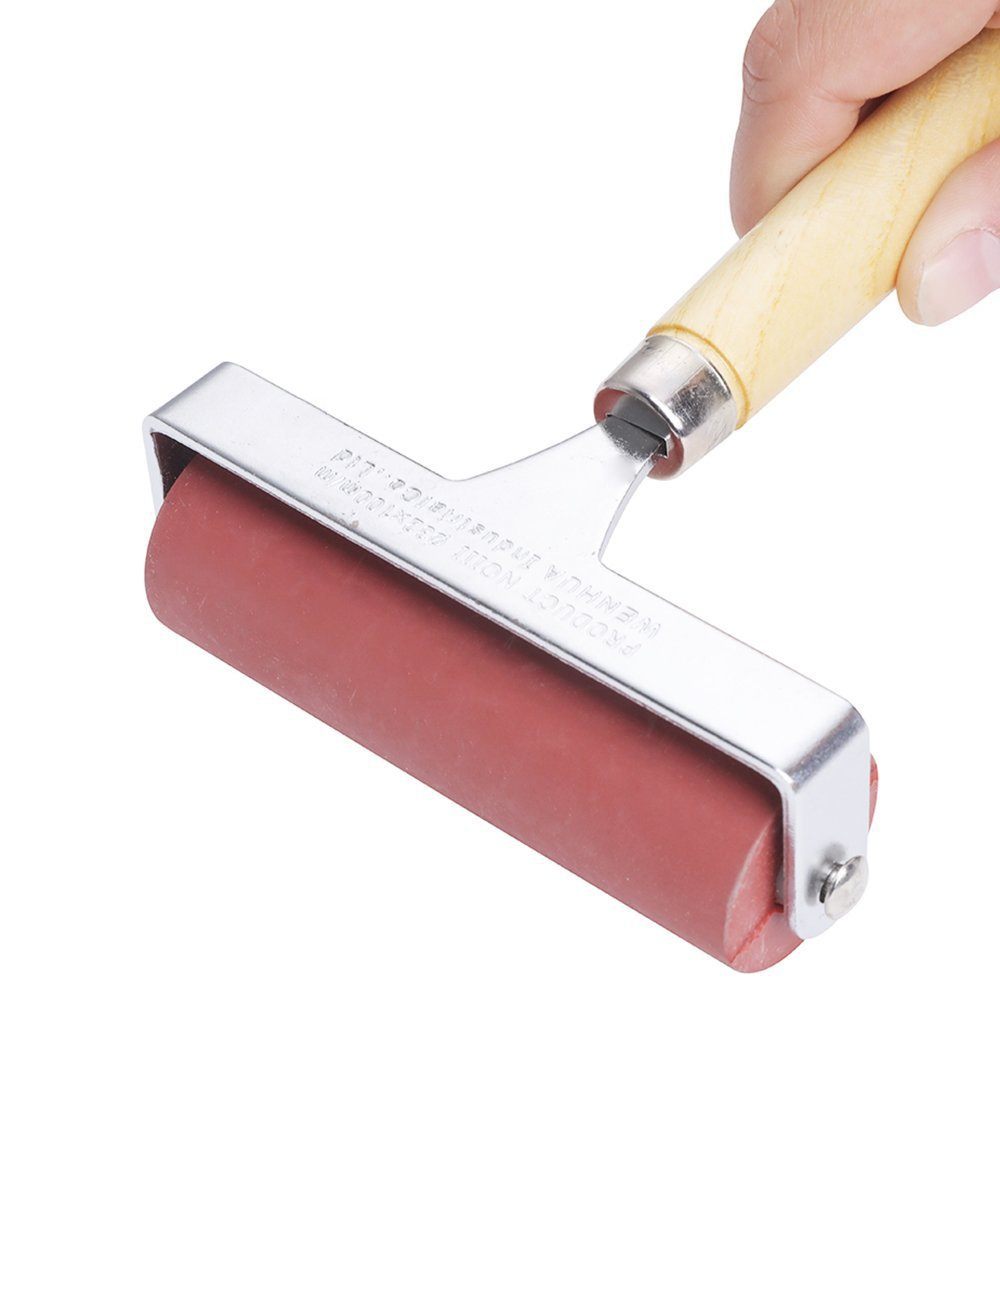 MEEDEN Hard Rubber Brayer Roller 4-inch for Printmaking Craft Projects by MEEDEN